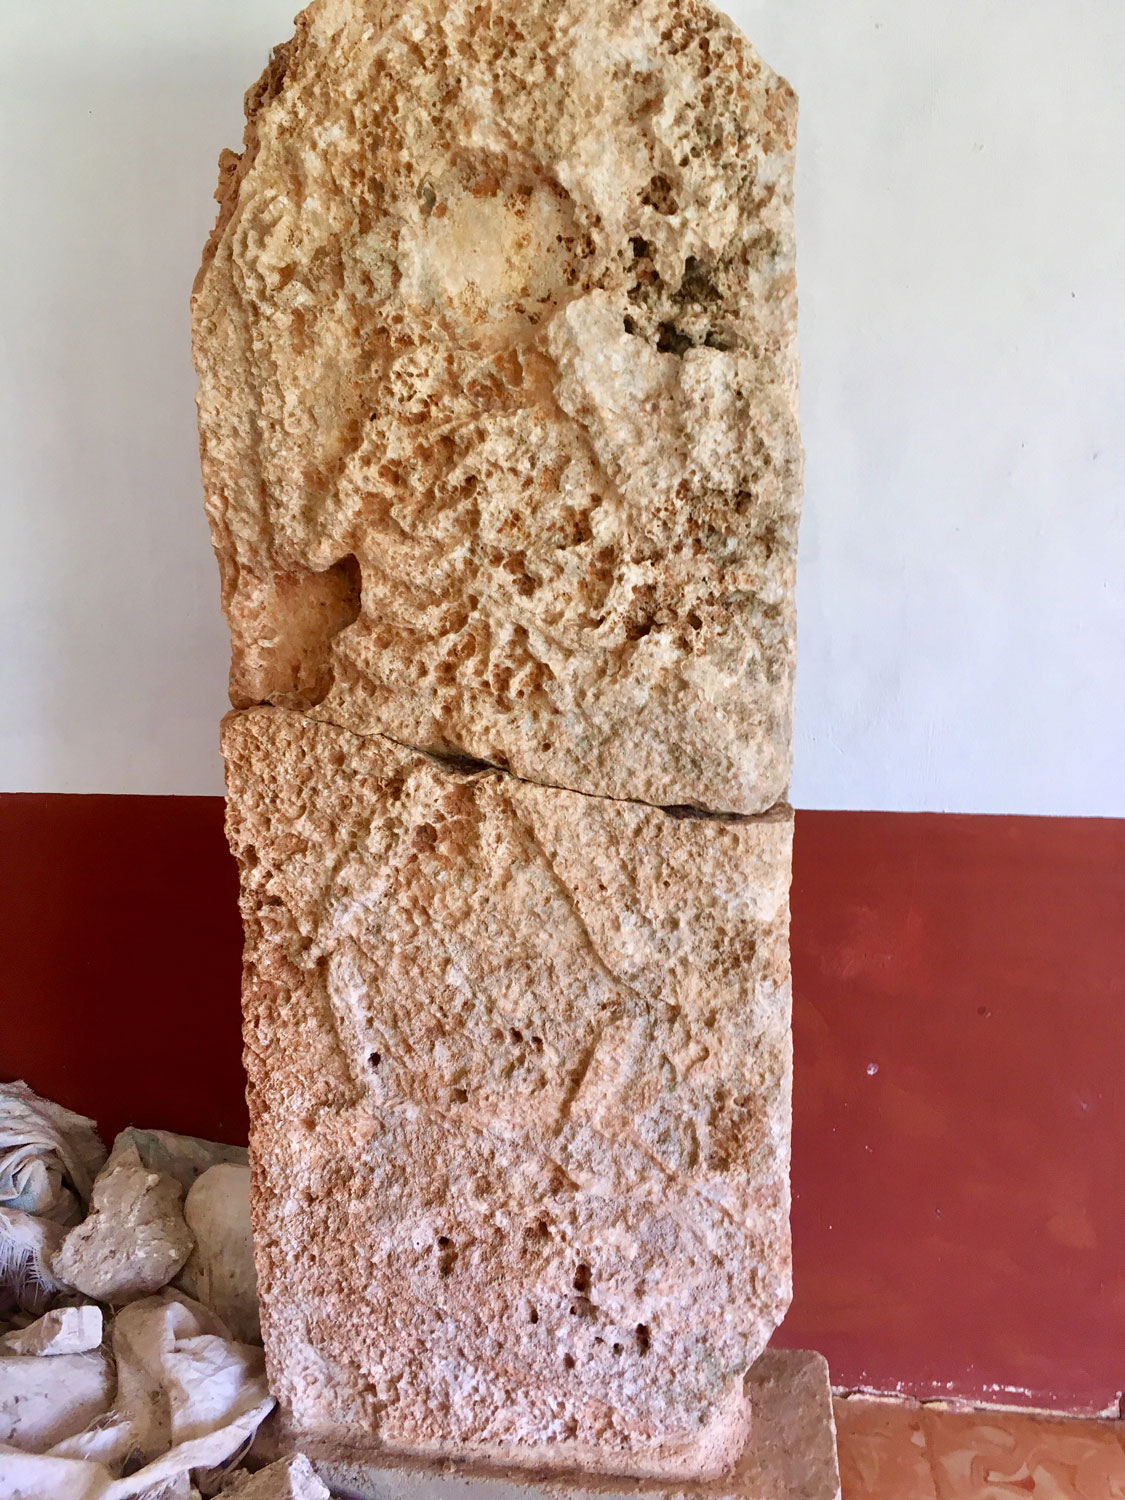 Stela from Uxmal: God of fertility? A captive with a phallus?